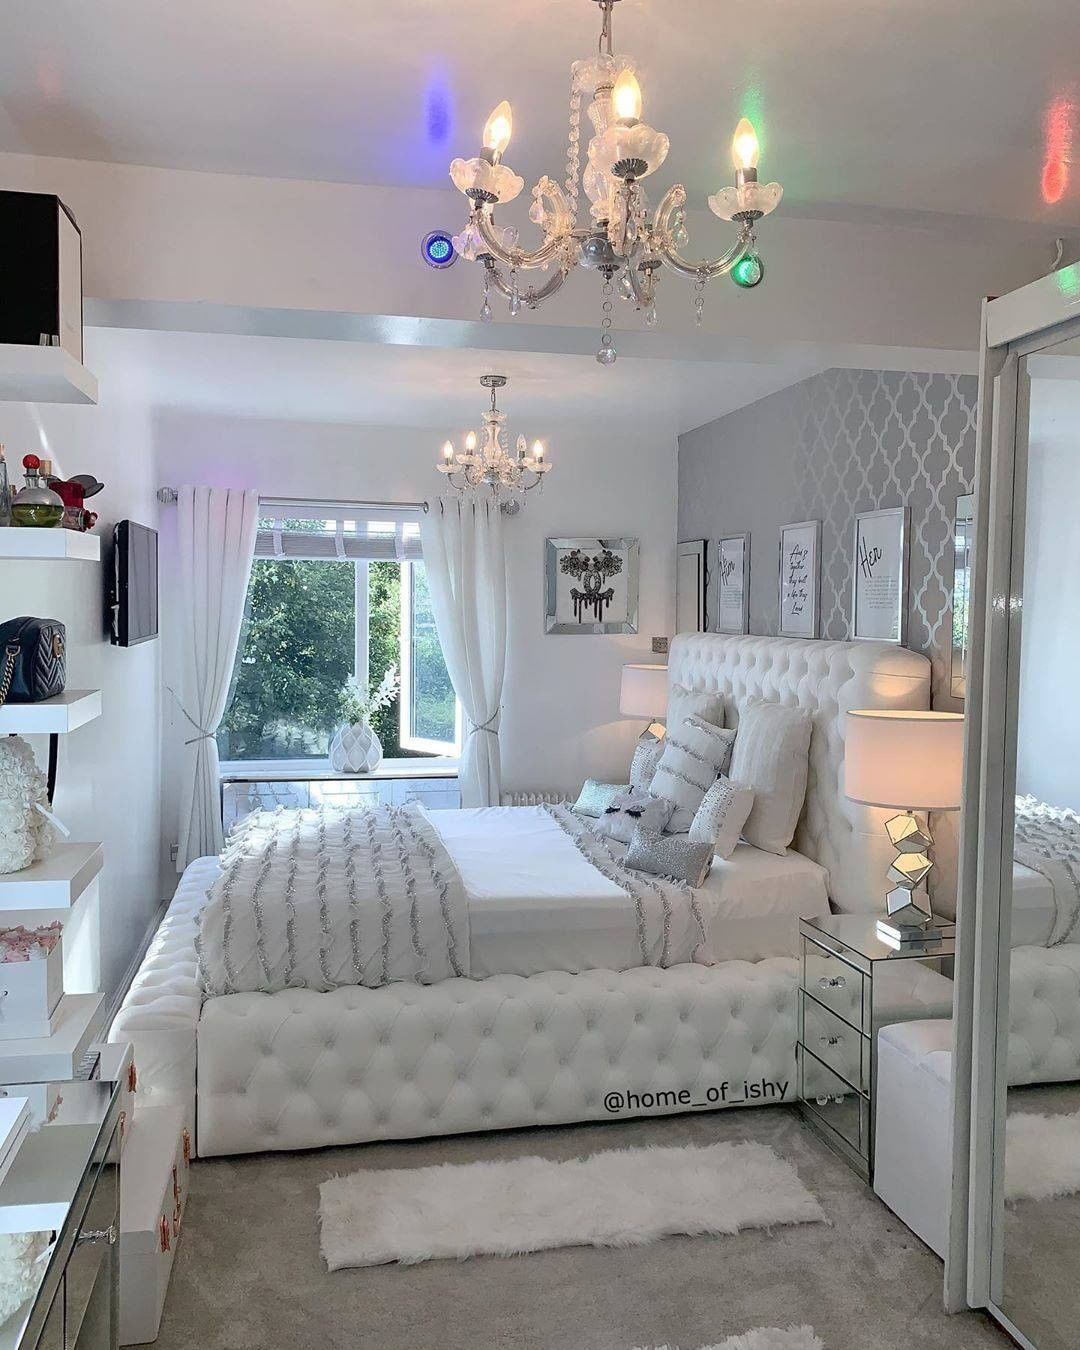 21++ Decoration chambre femme moderne ideas in 2021